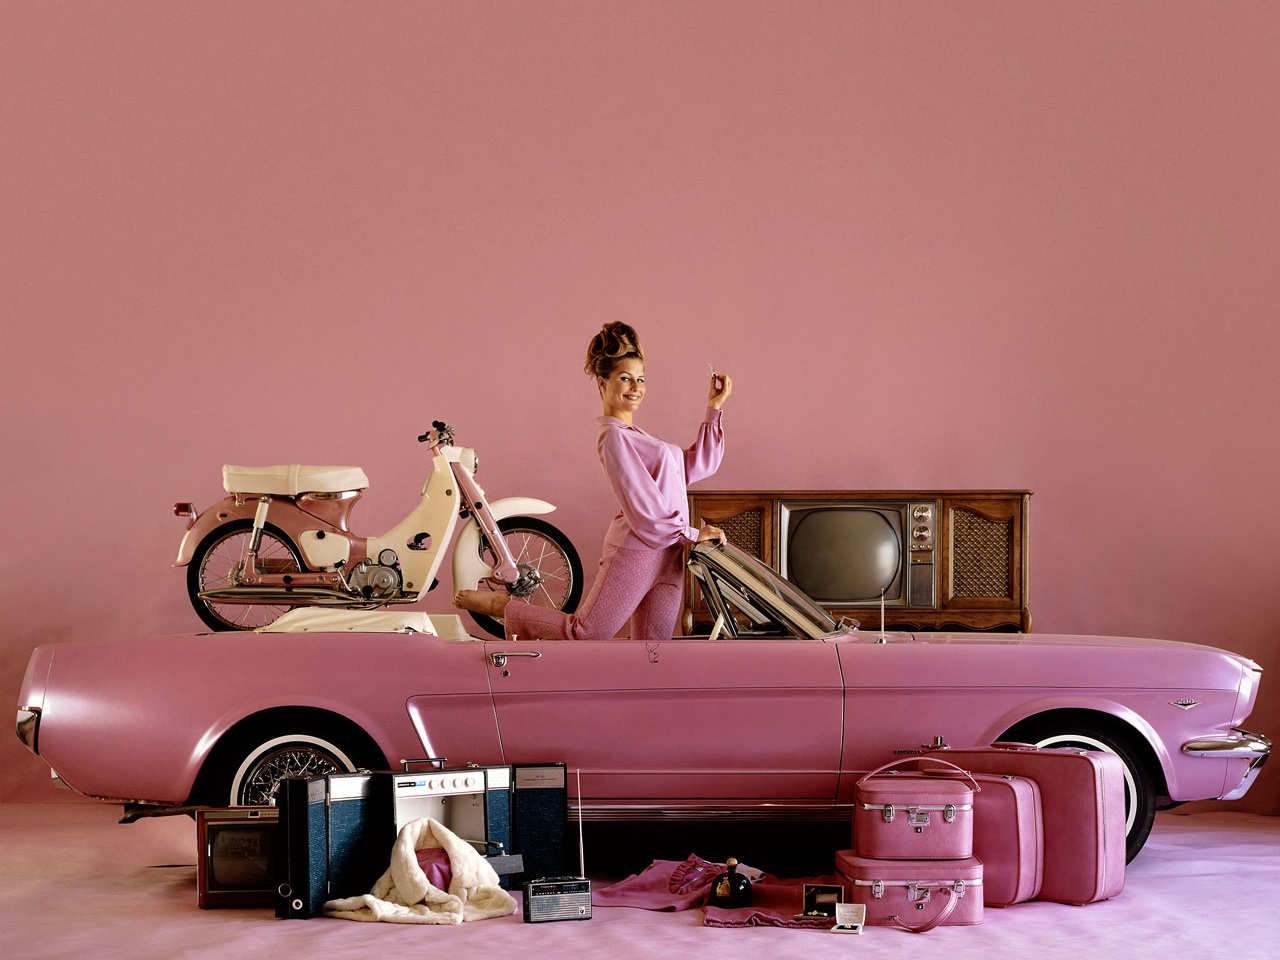 Pink Cars And Retro Girls Will Remind You Of The Playboy Lifestyle Autoevolution